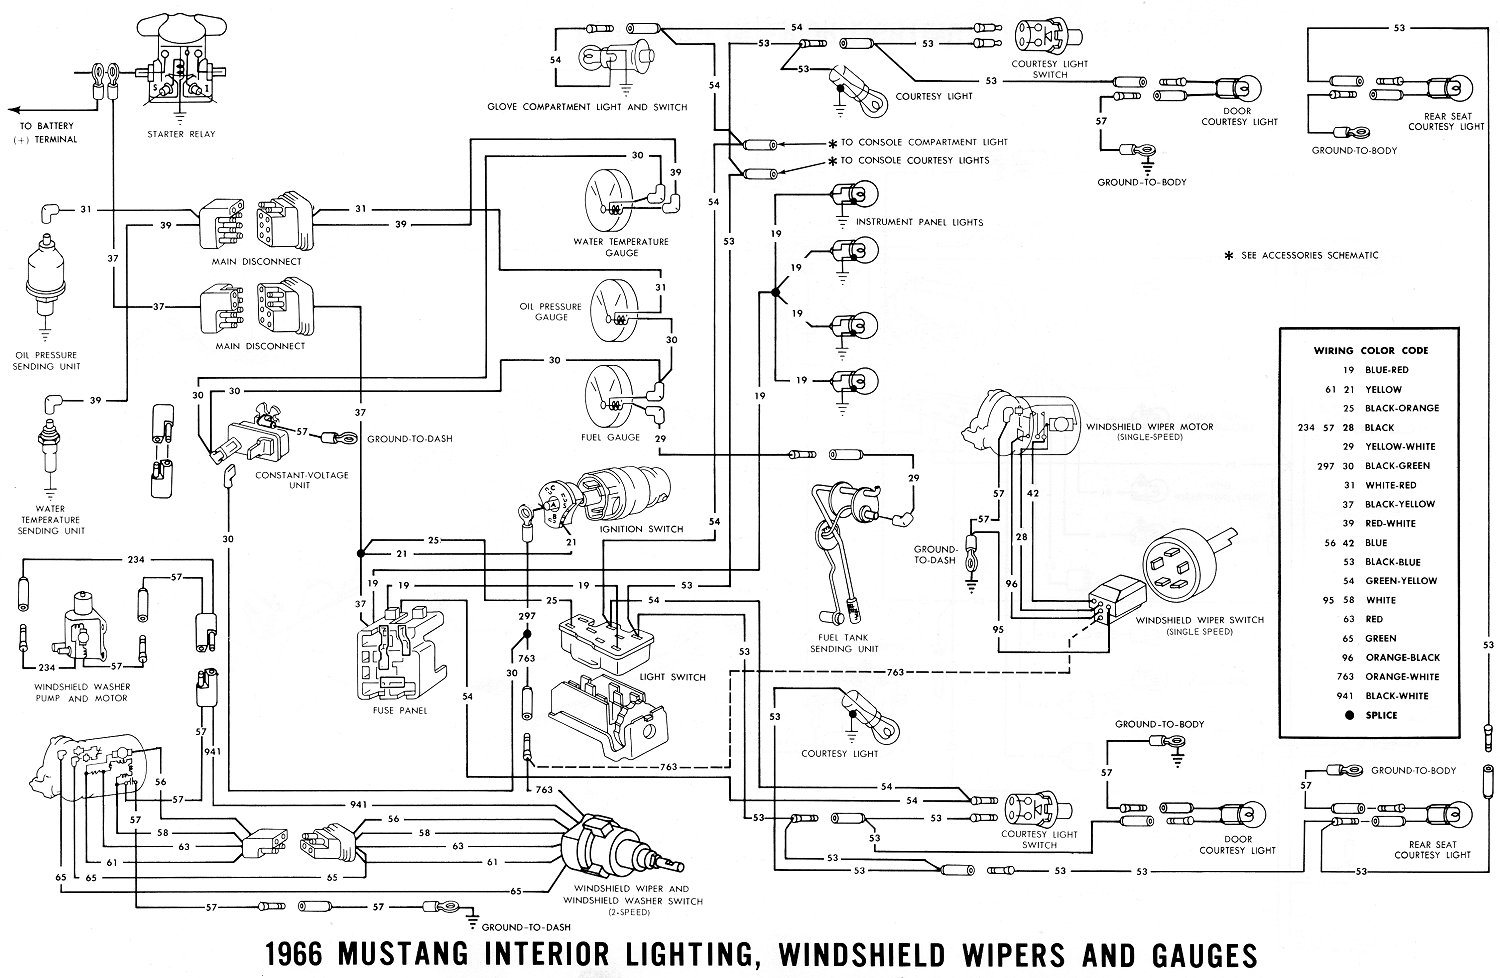 66inter1 vintage mustang wiring diagrams 1968 mustang ignition switch wiring diagram at gsmx.co